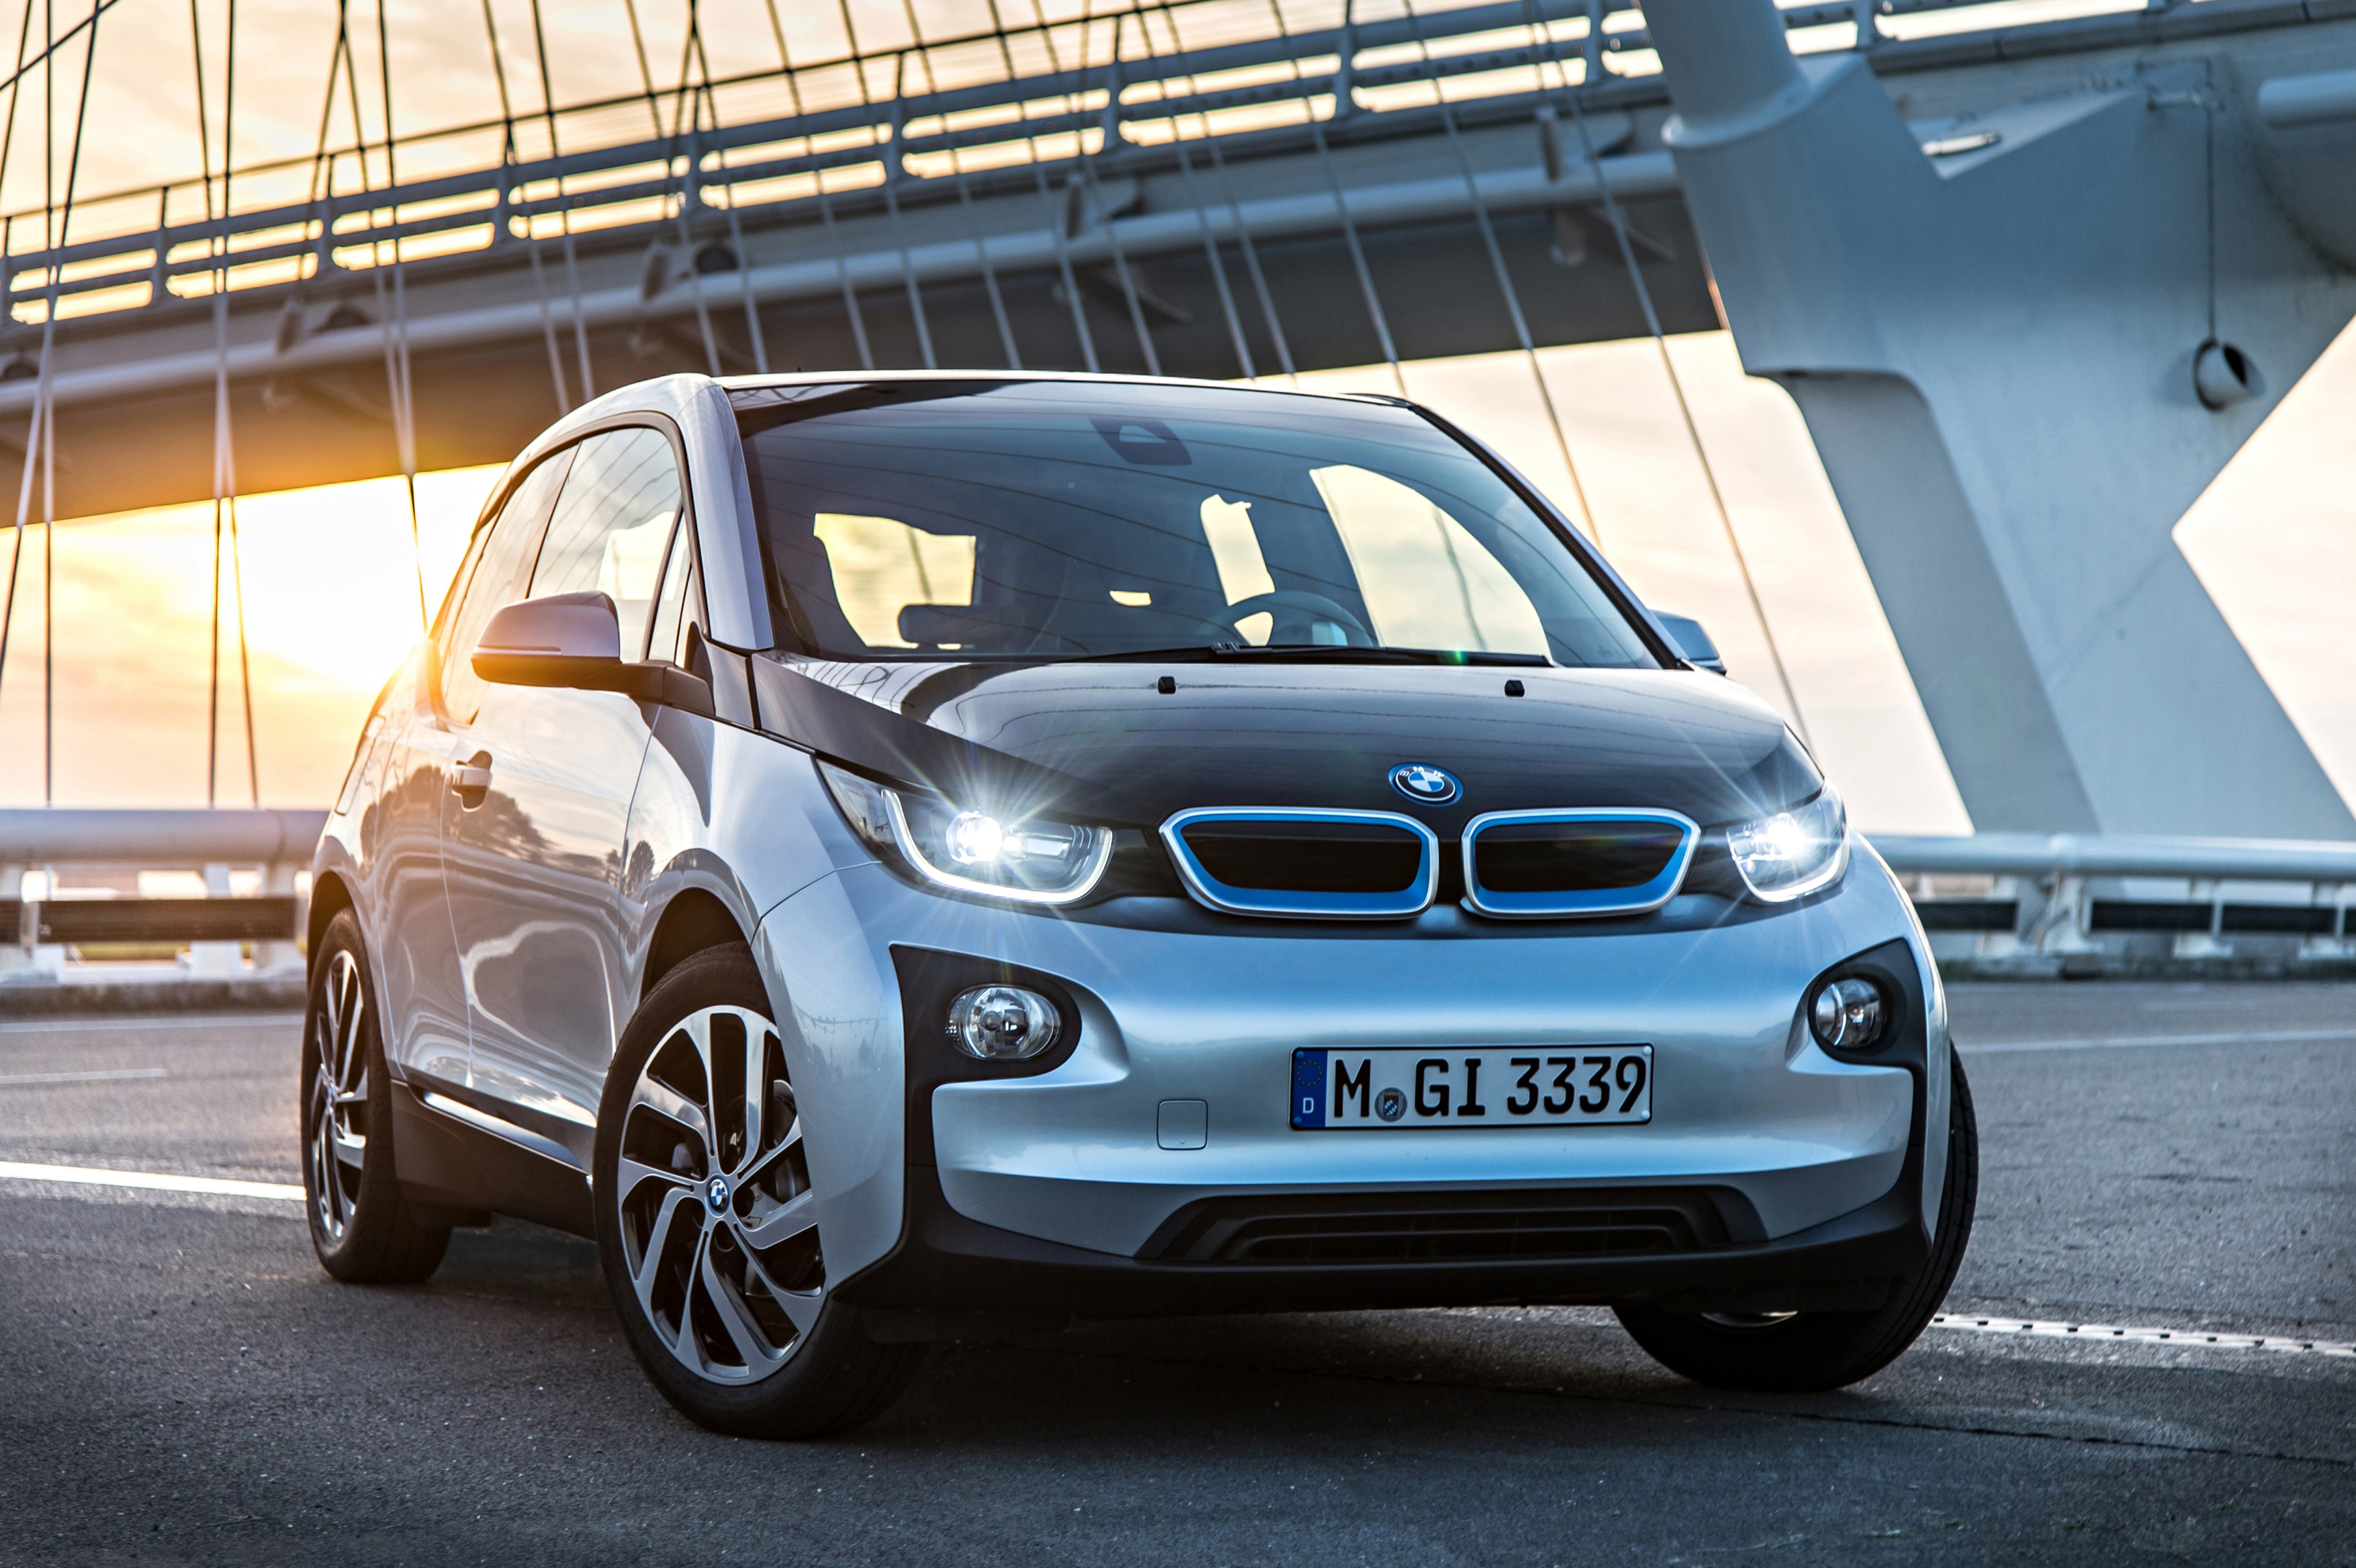 bmw i3 range extender weighs 265lbs won 39 t charge battery motor review. Black Bedroom Furniture Sets. Home Design Ideas